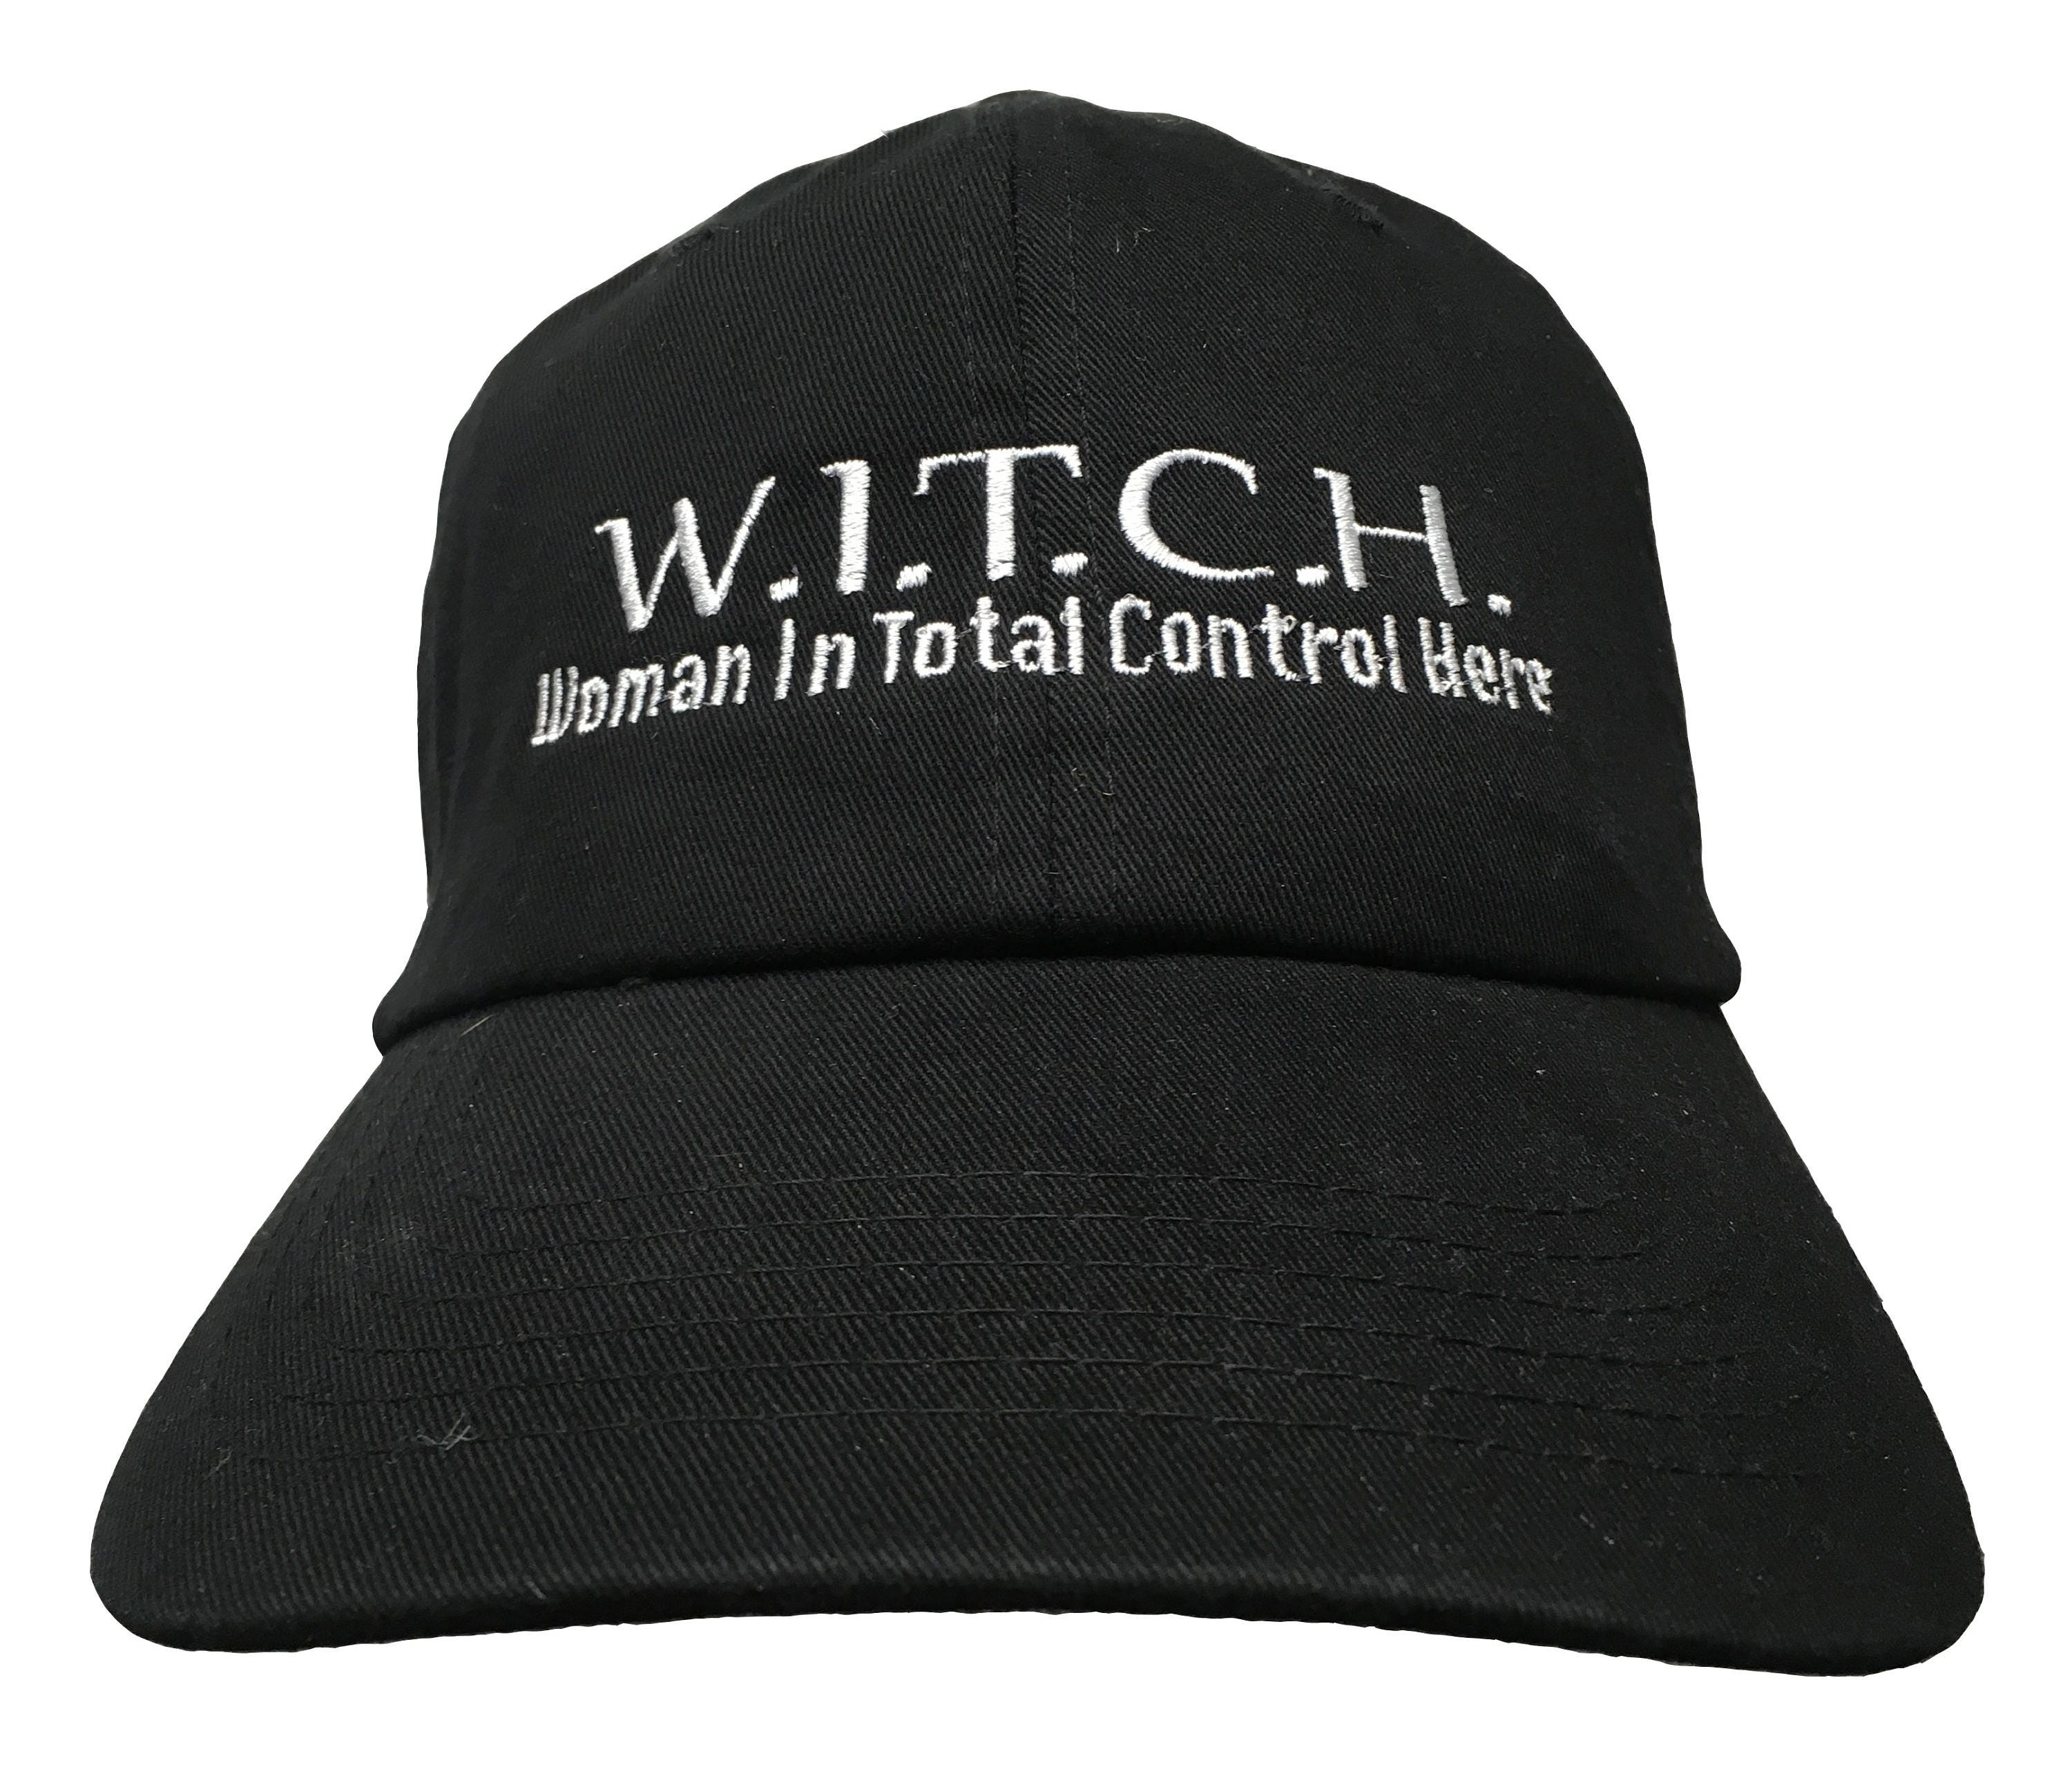 WITCH Woman in Total Control Here Polo Style Ball Cap  45eb0468129